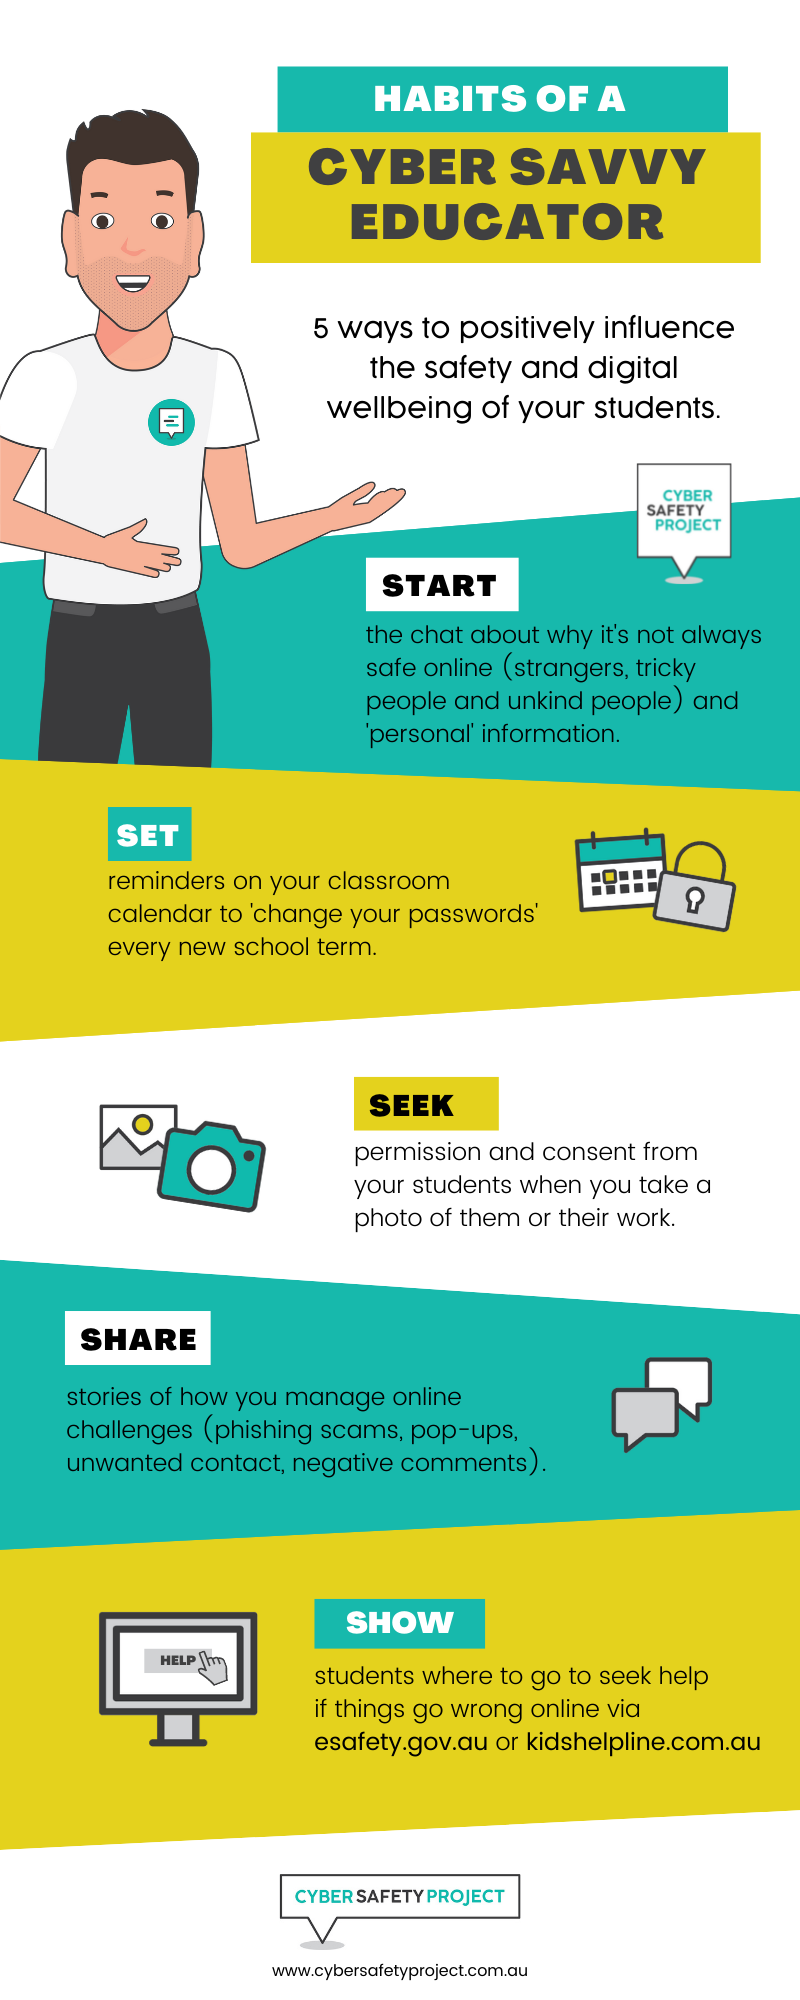 A list of 5 habits of a cyber savvy educator